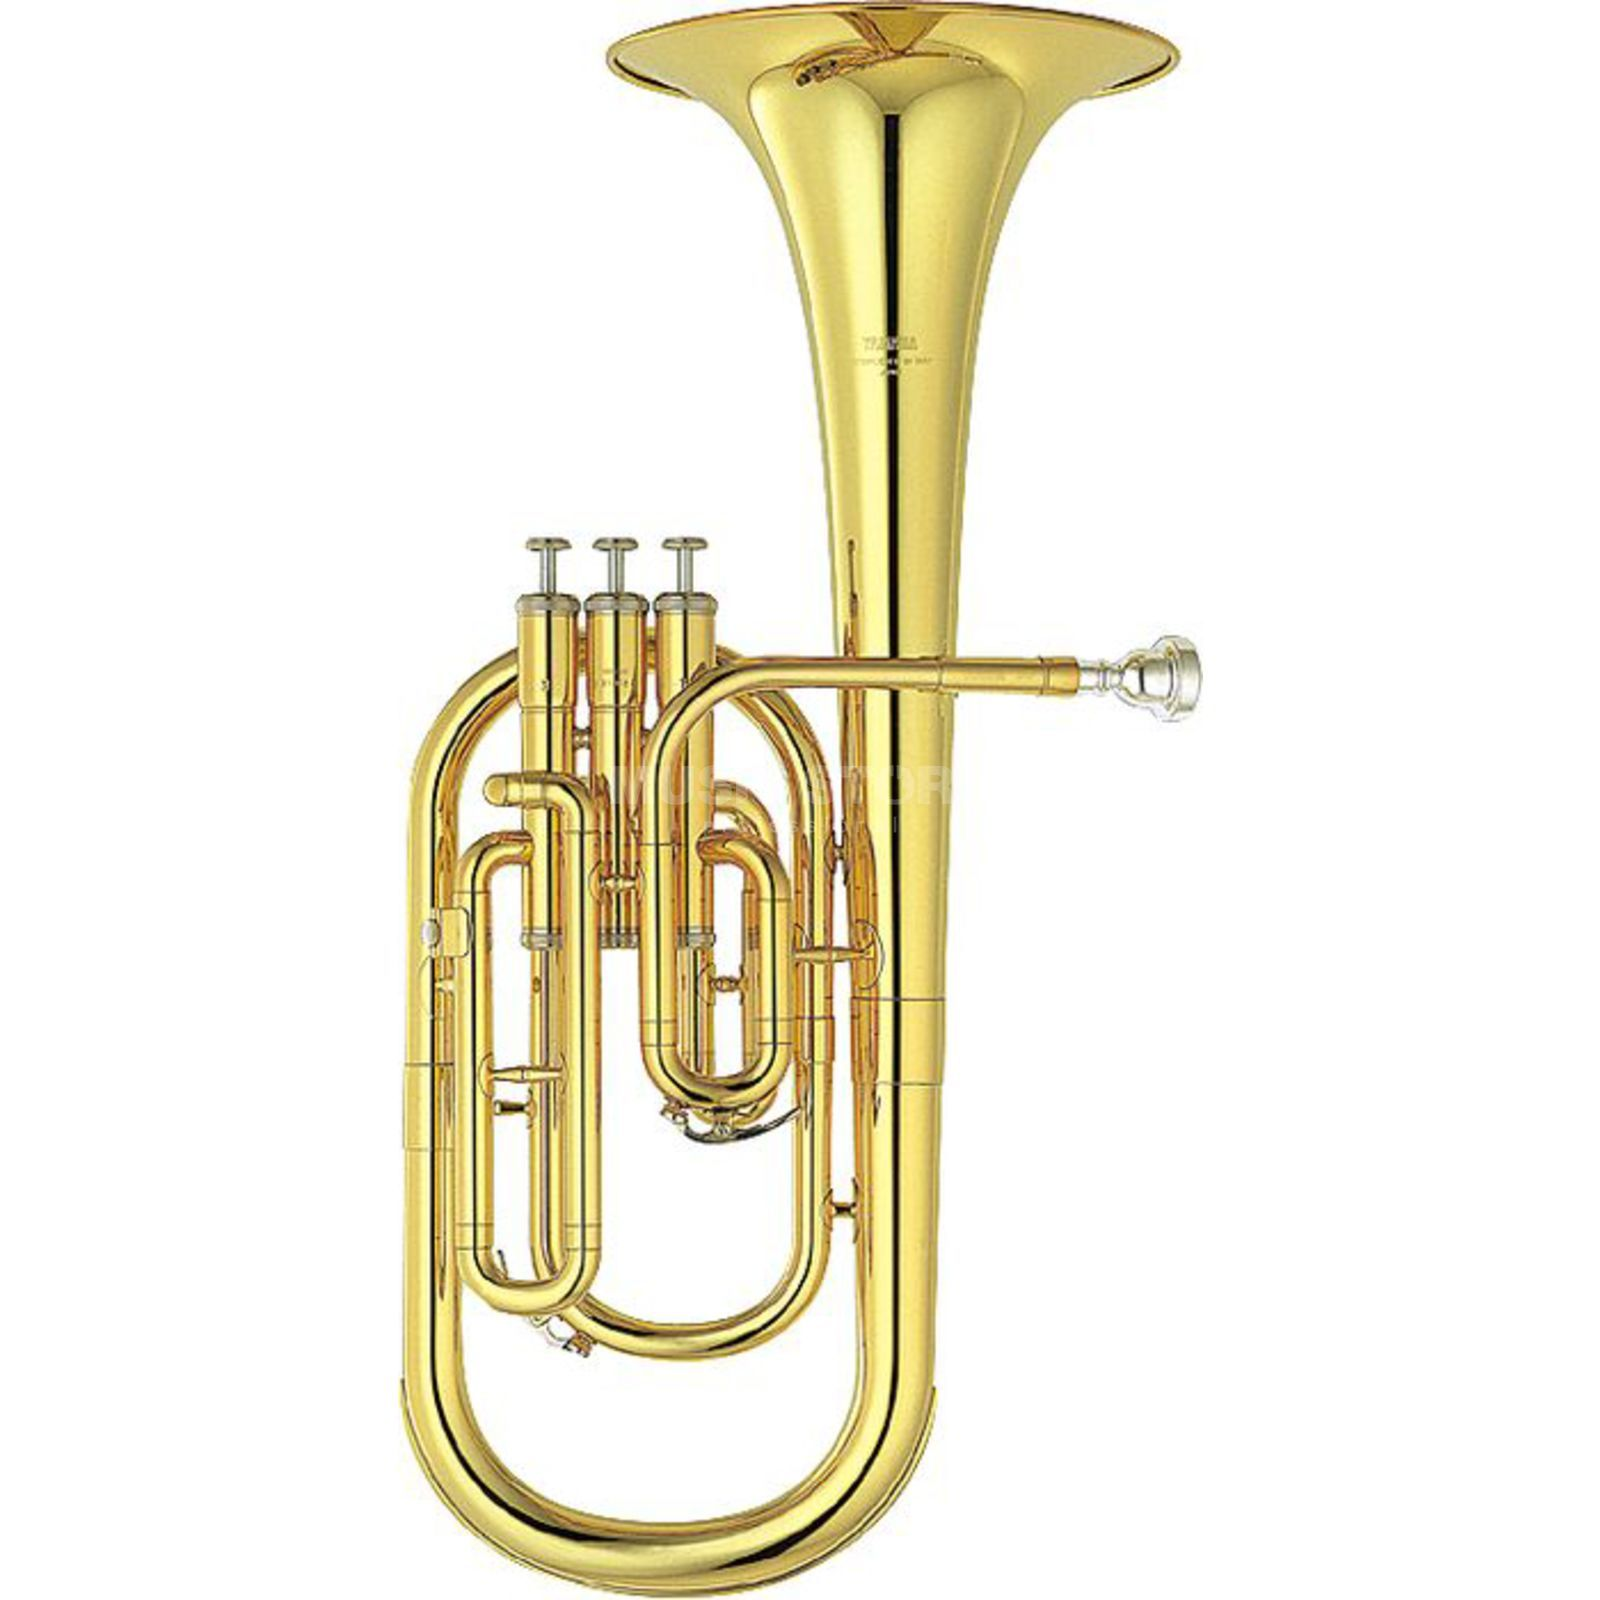 Yamaha YAH-203 Eb-Alto Horn Three Valves, Gold Lacquer Product Image